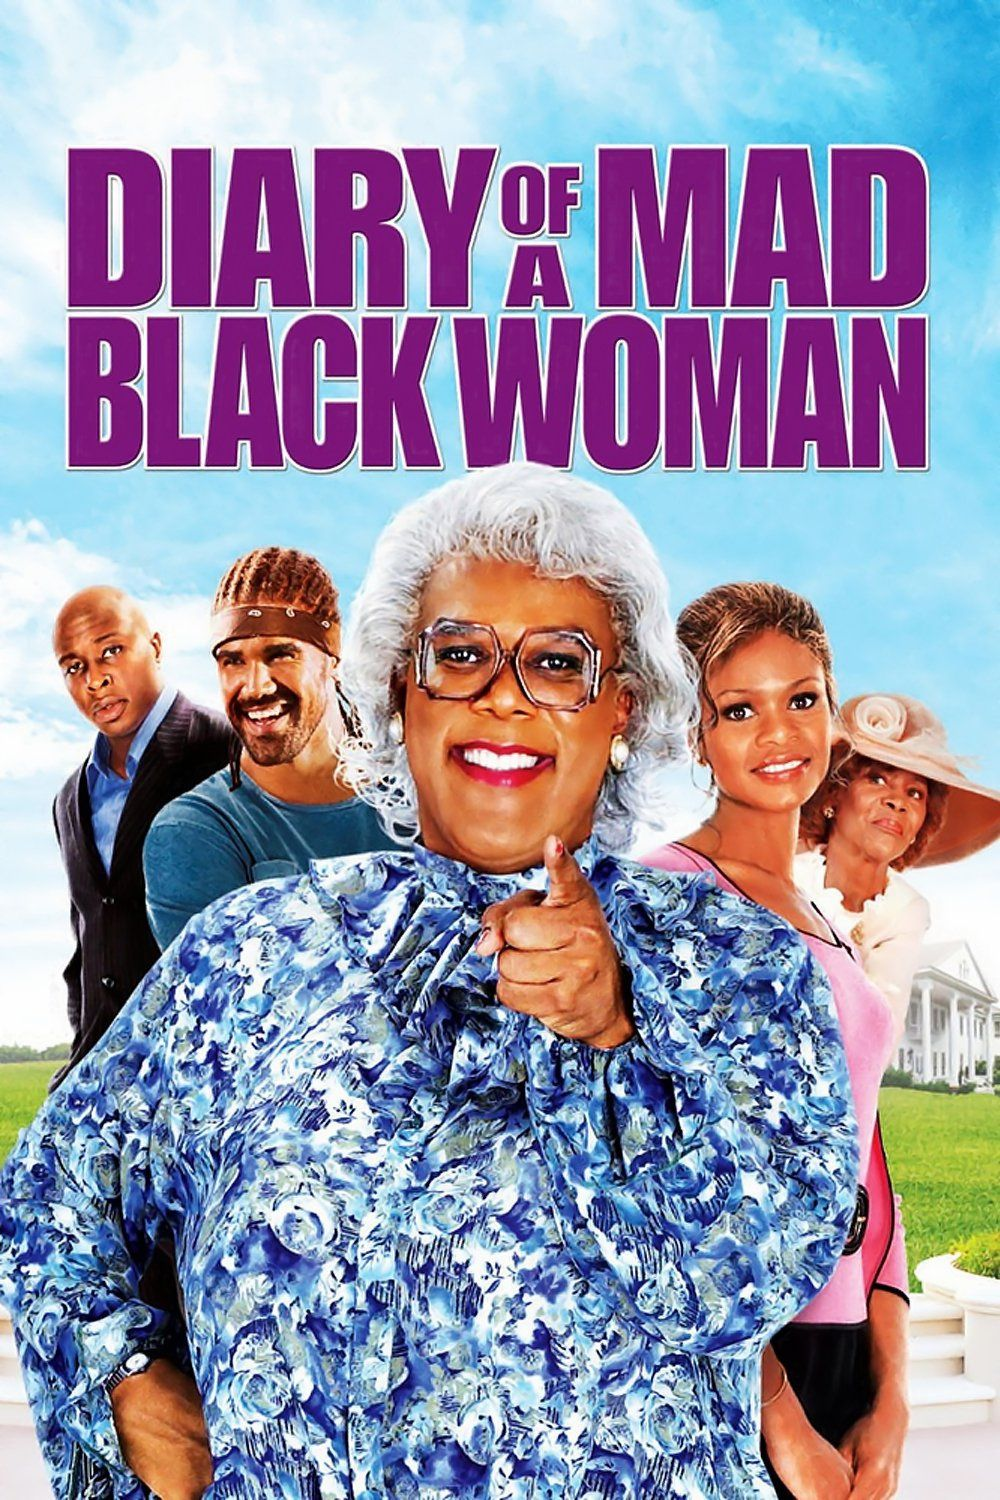 click image to watch Diary of a Mad Black Woman (2005)